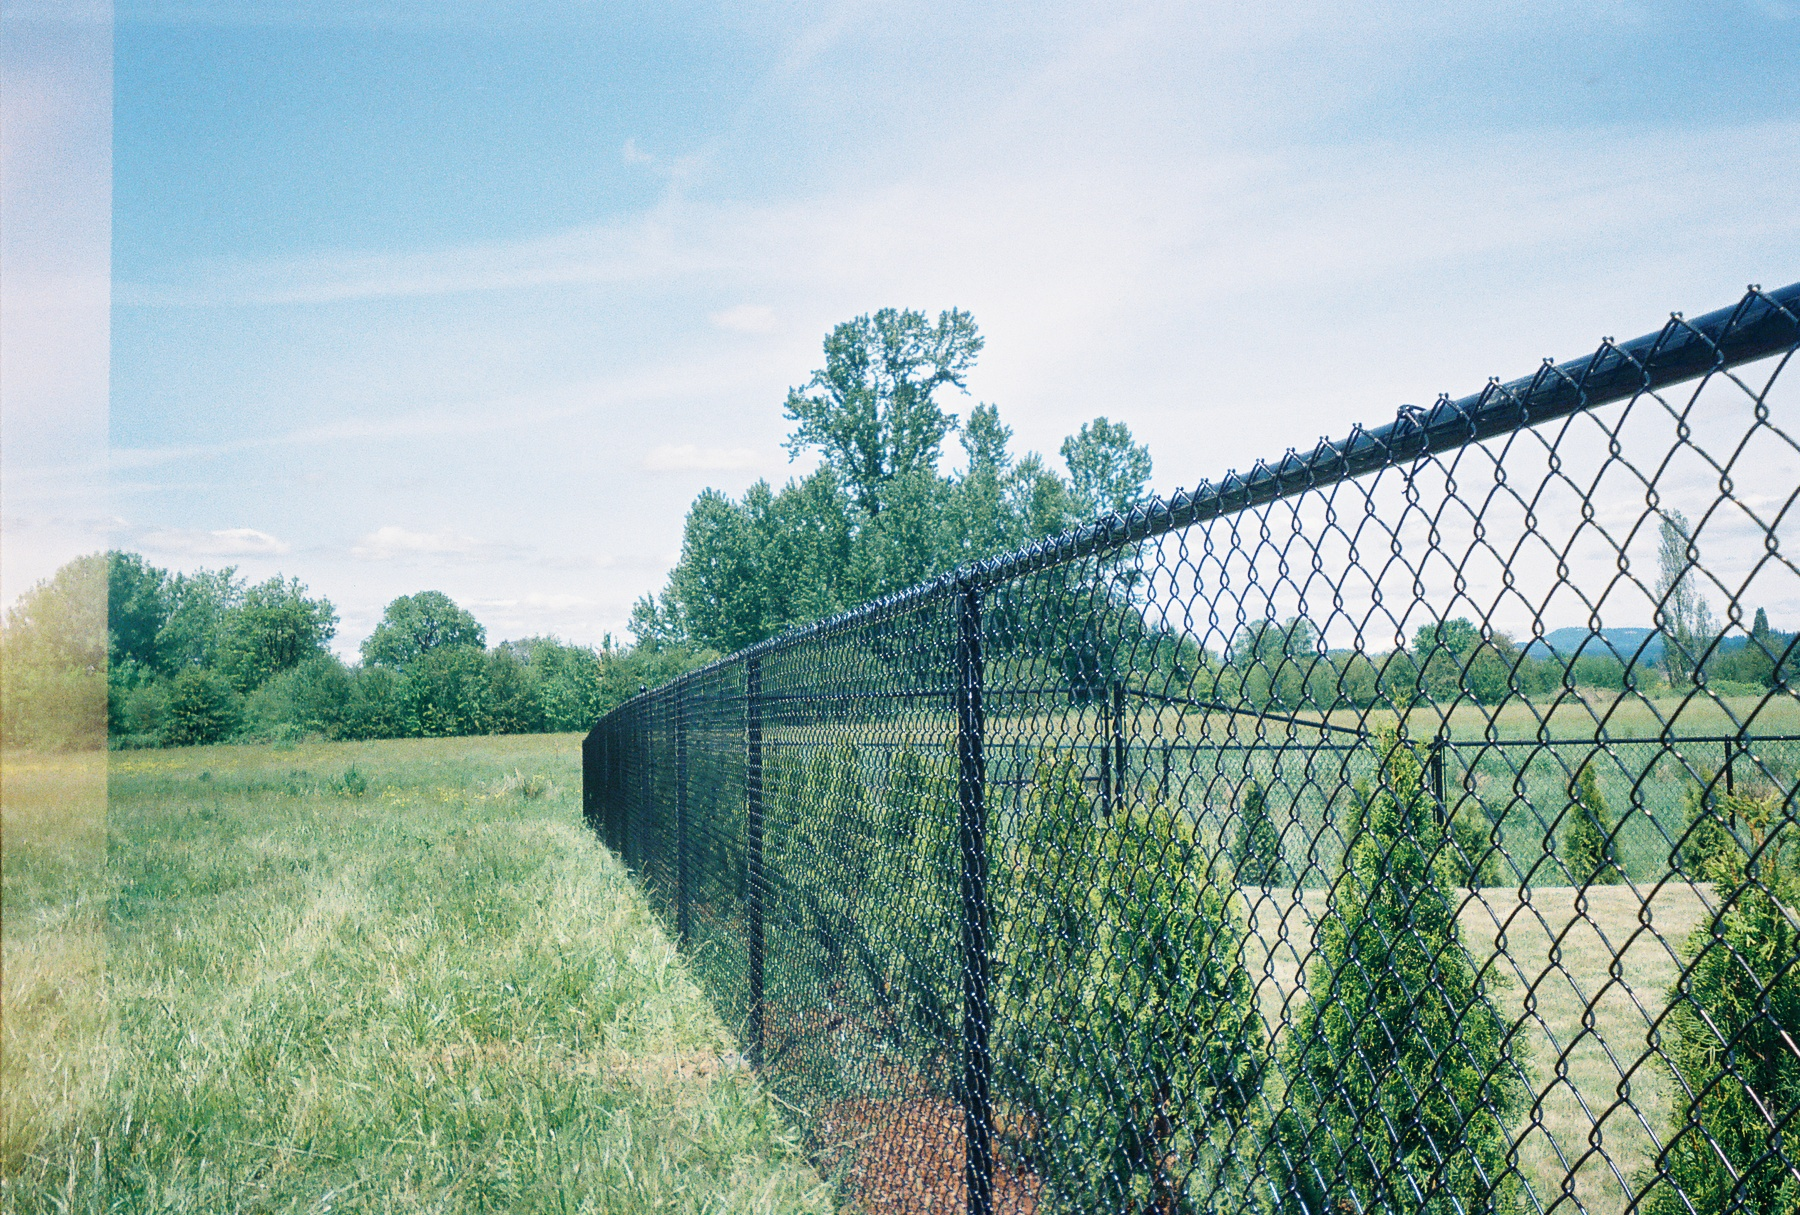 Black Vinyl chain link fence blends perfectlyl with all types of landscaping. Contact Vancouver Washington's Best Fence Builders. The Fenceman Fence Company installs wood, vinyl, chain link and ornamental iron fences. We also offer materials for the do it yourselfer.